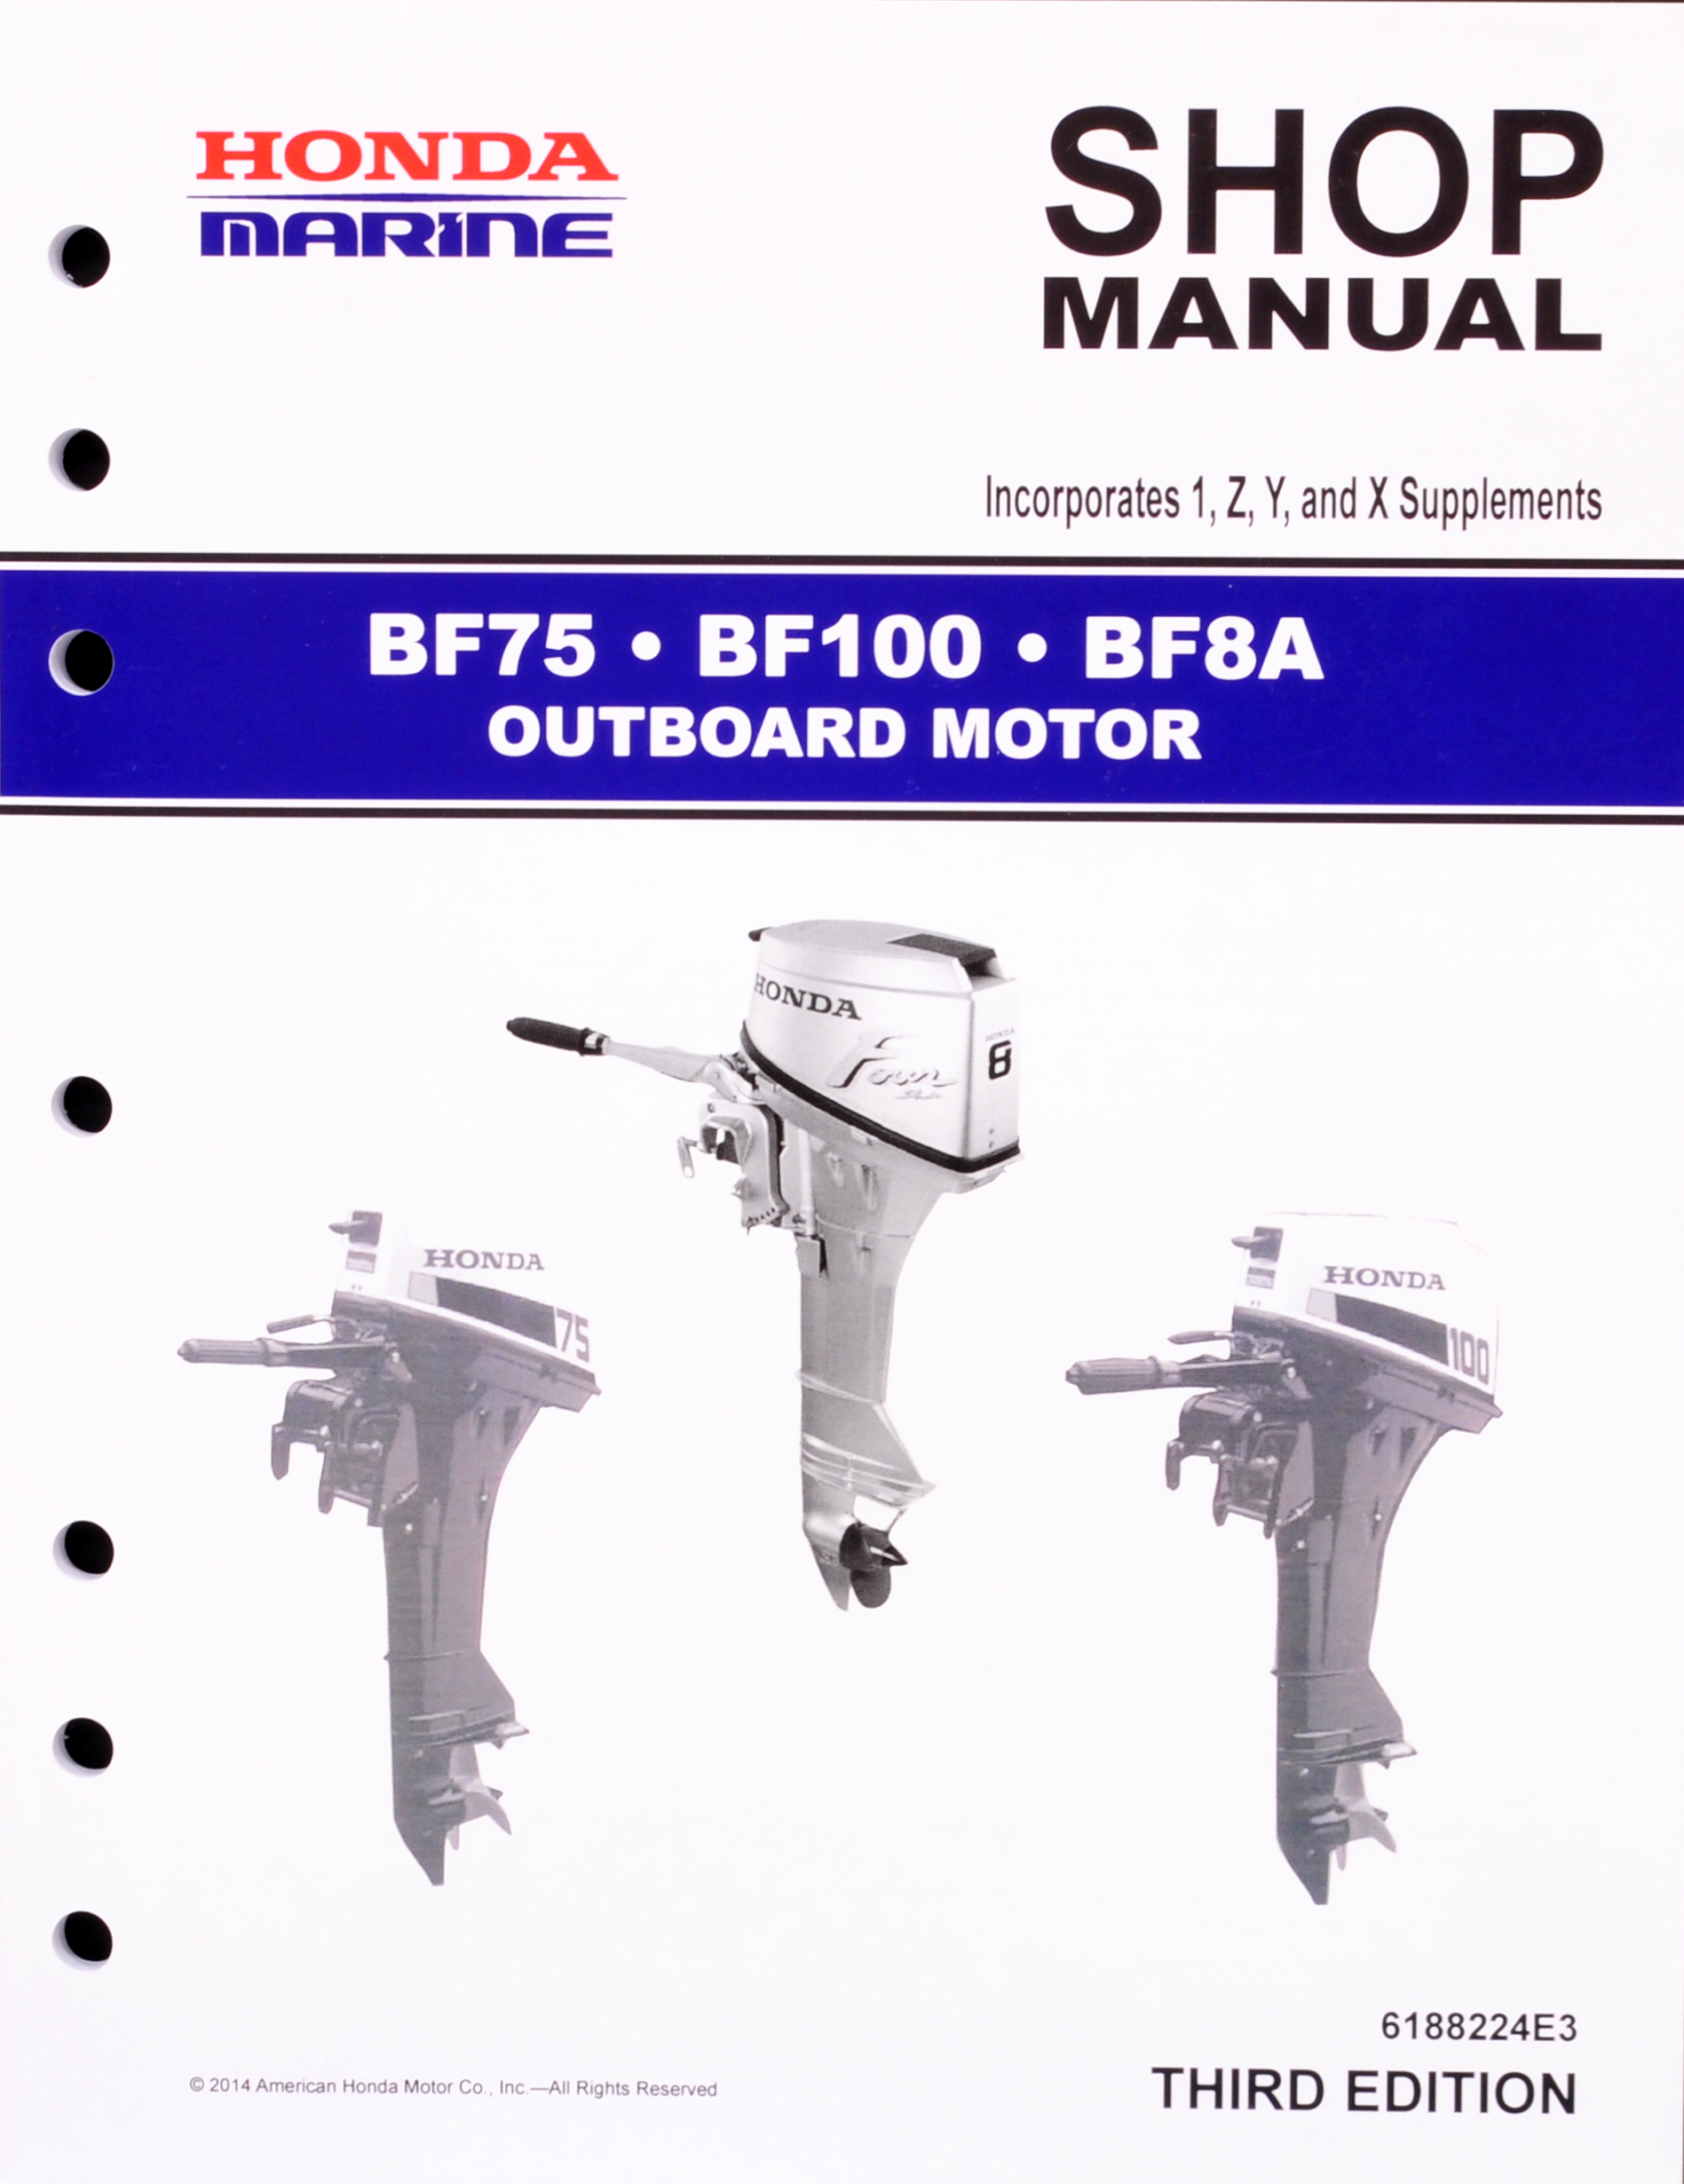 Honda marine outboard bf75 a bf90a service repair workshop manual dow….